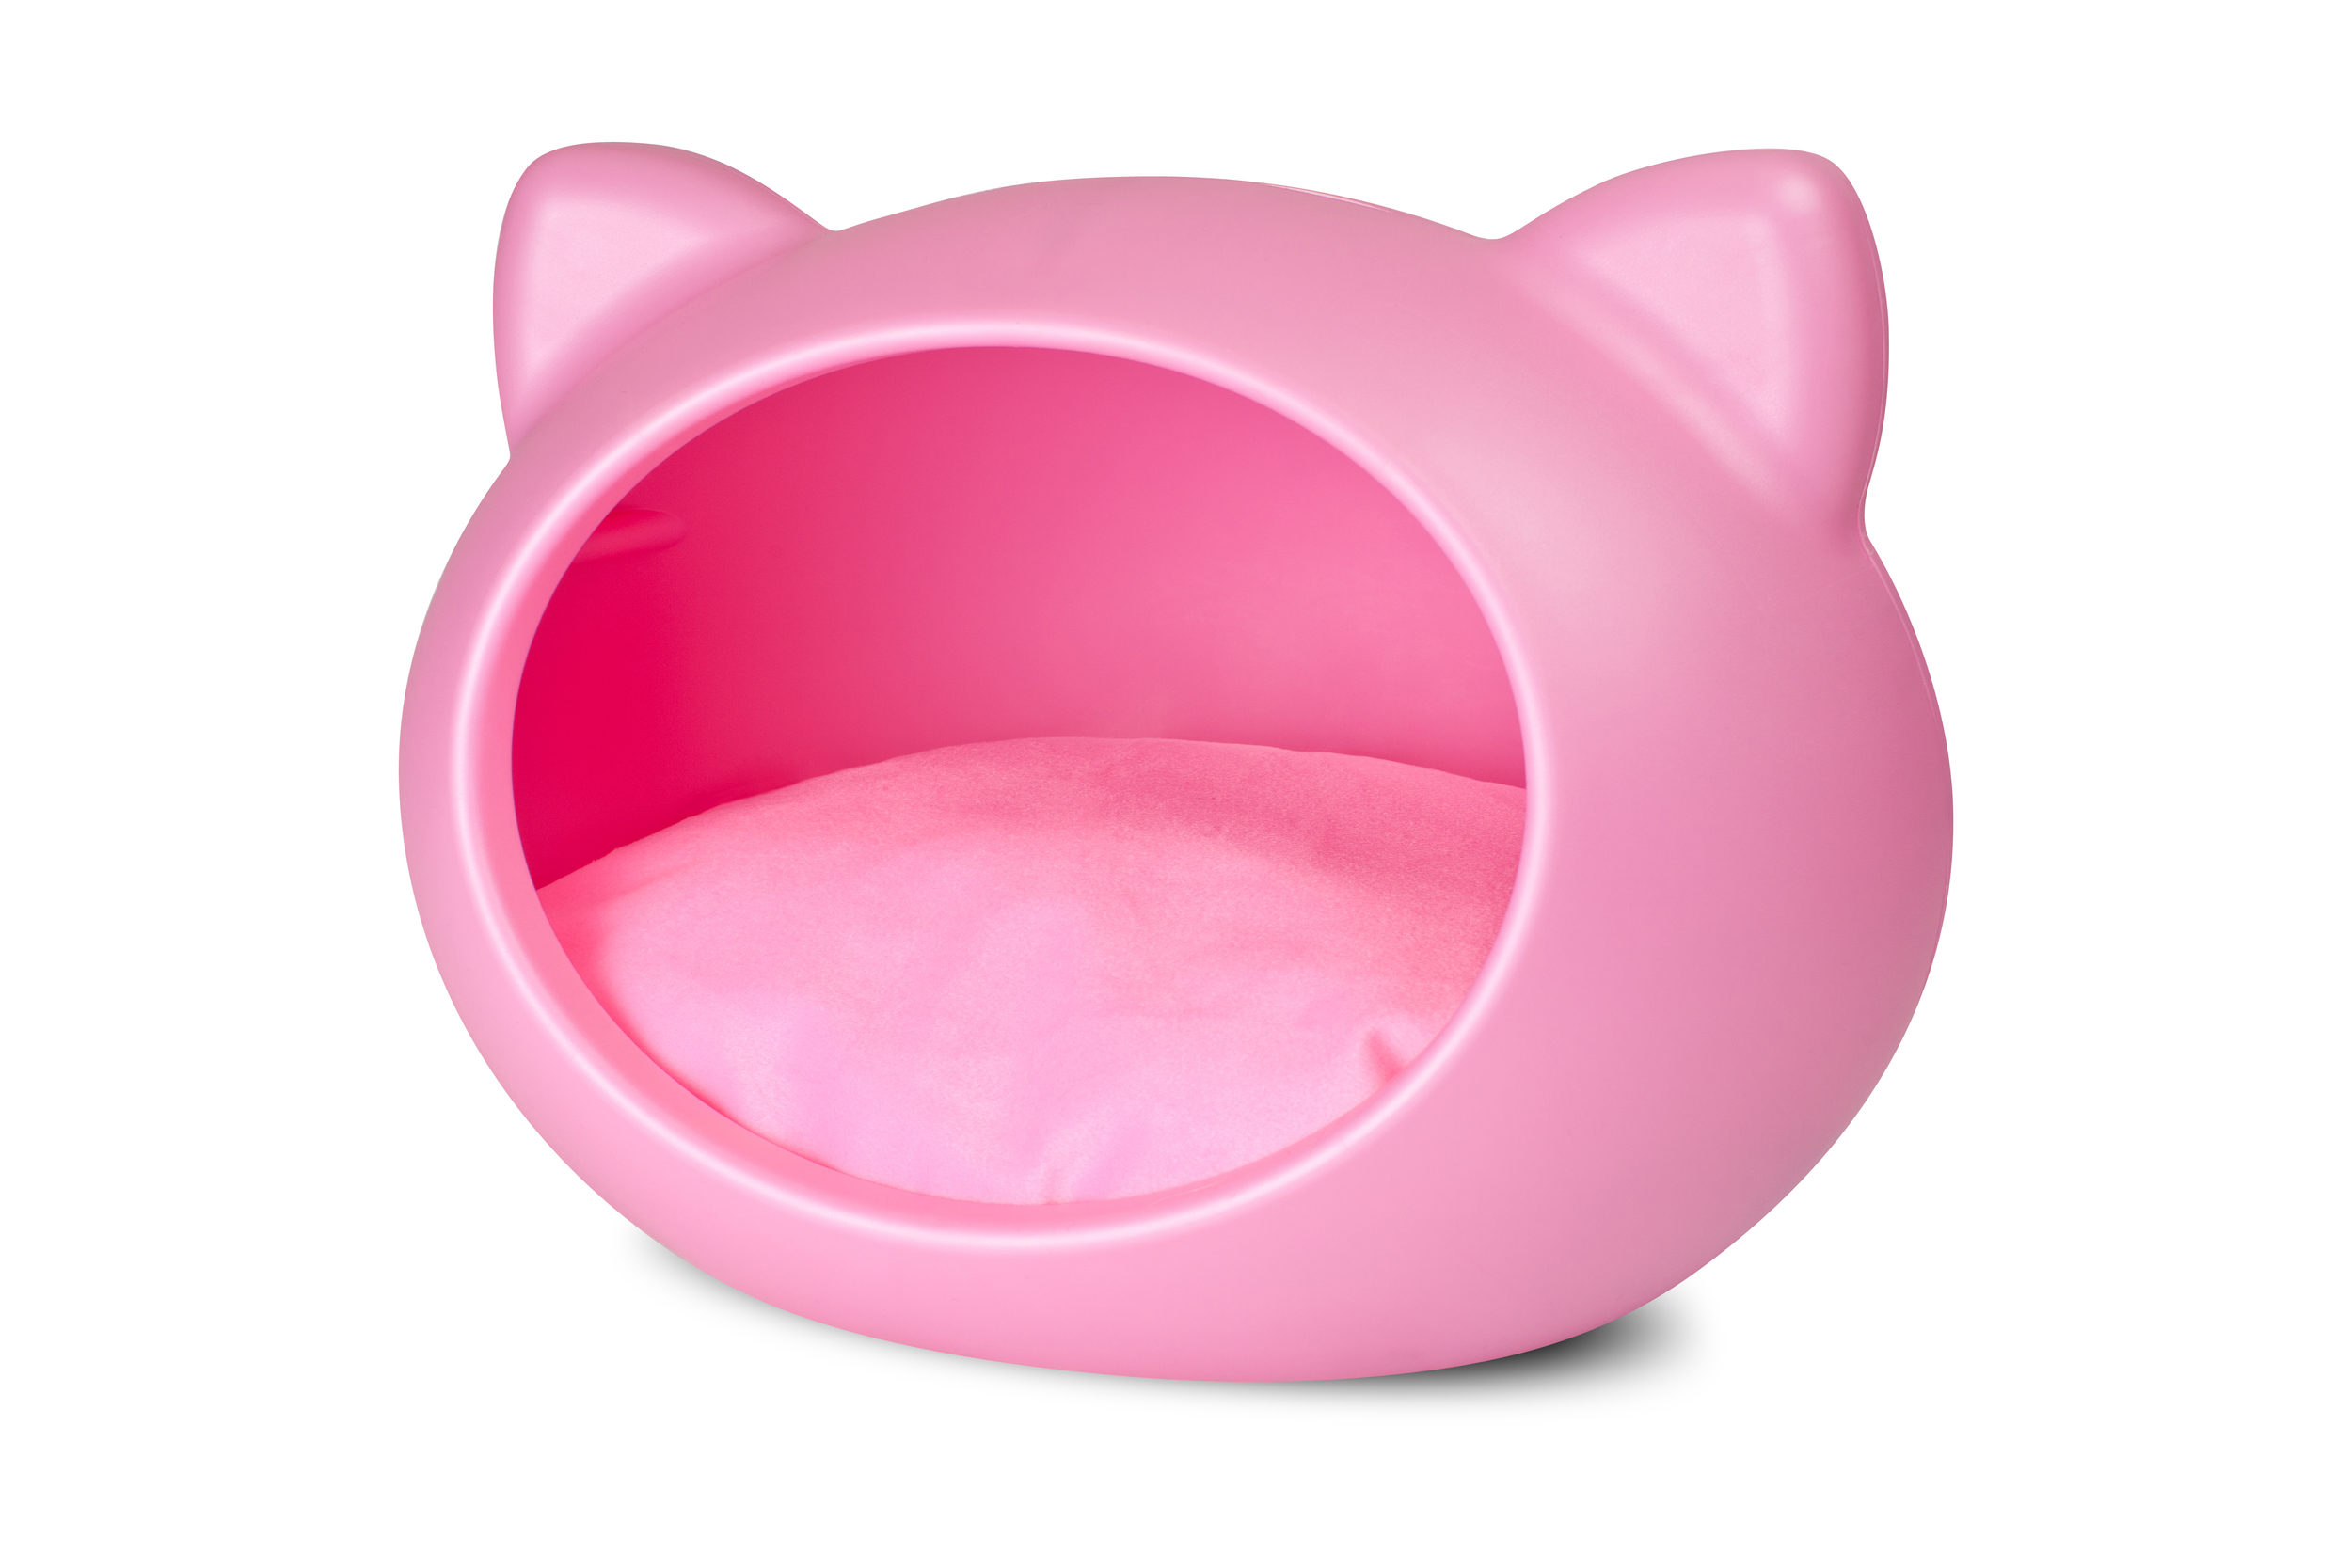 pink_cat_bed_guisapet_side_pink_cushion.jpg